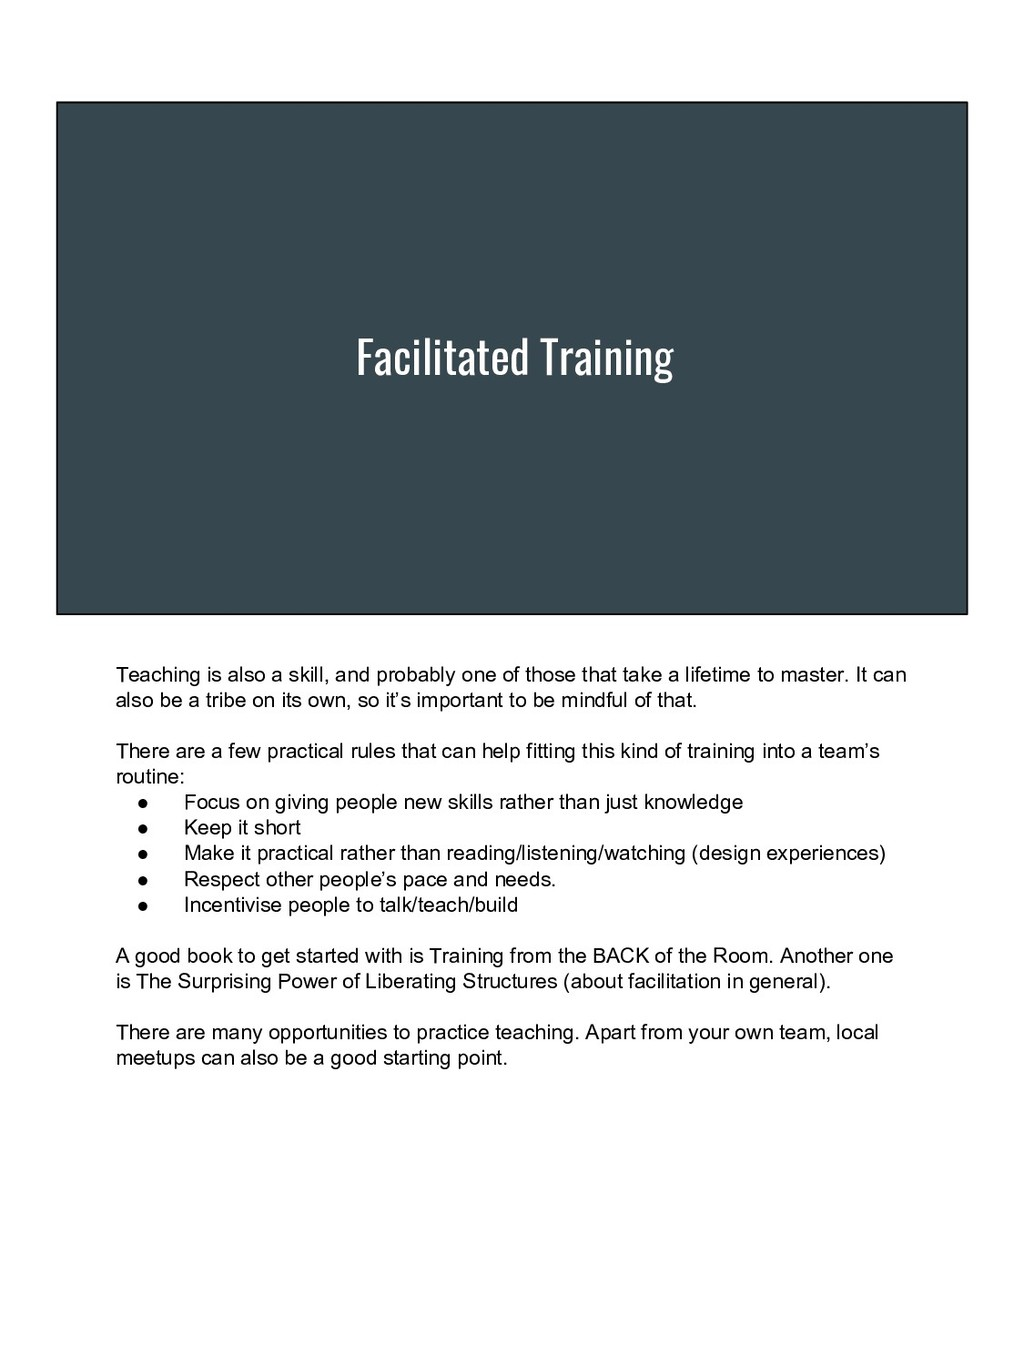 Facilitated Training Teaching is also a skill, ...